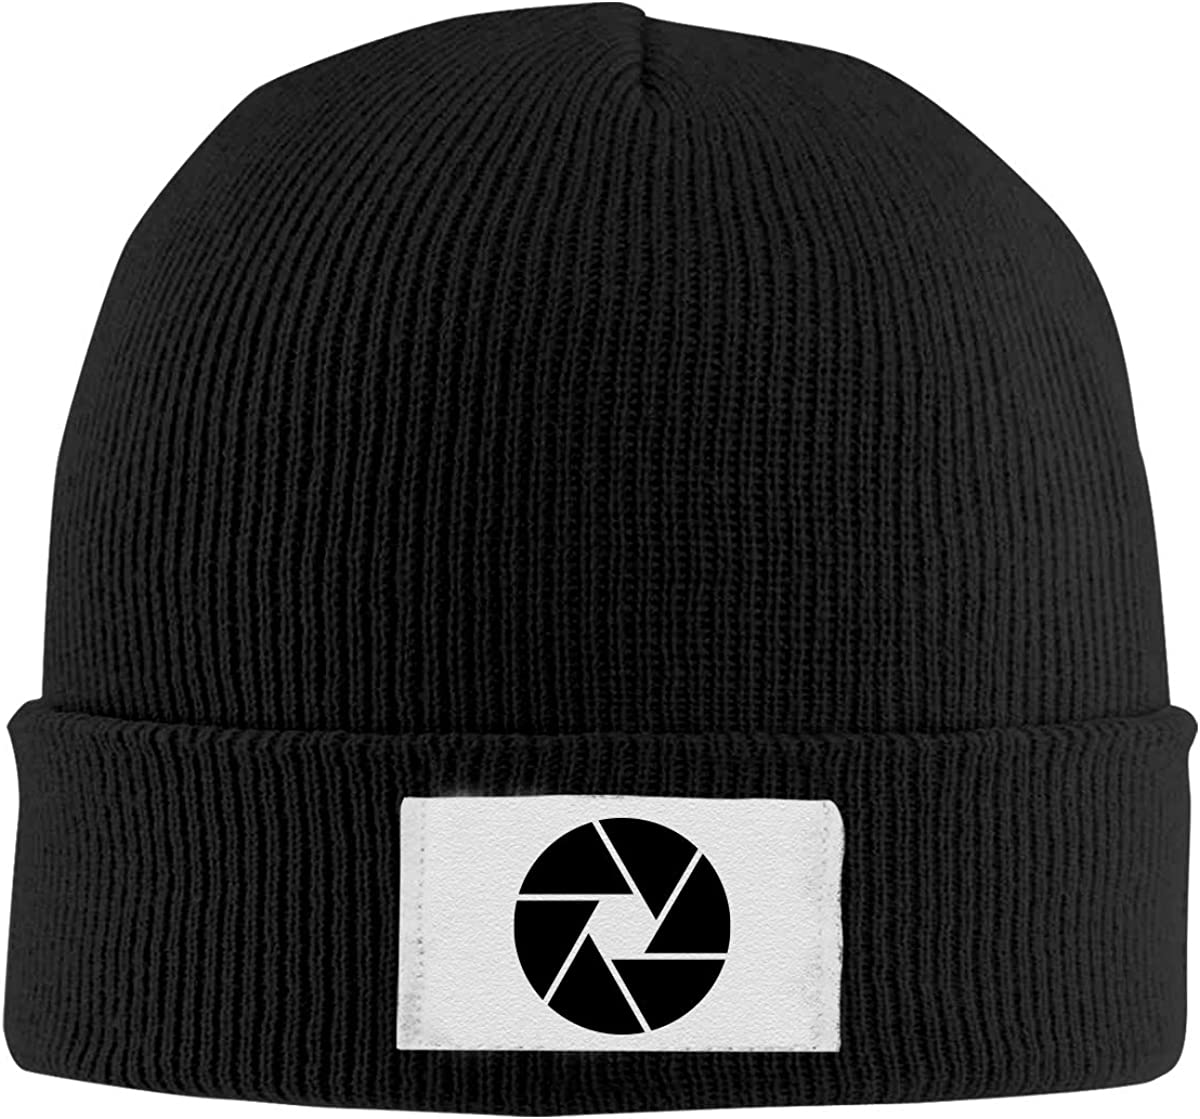 Stretchy Cuff Beanie Hat Black Dunpaiaa Skull Caps Camera Aperture Shutter Photography Winter Warm Knit Hats